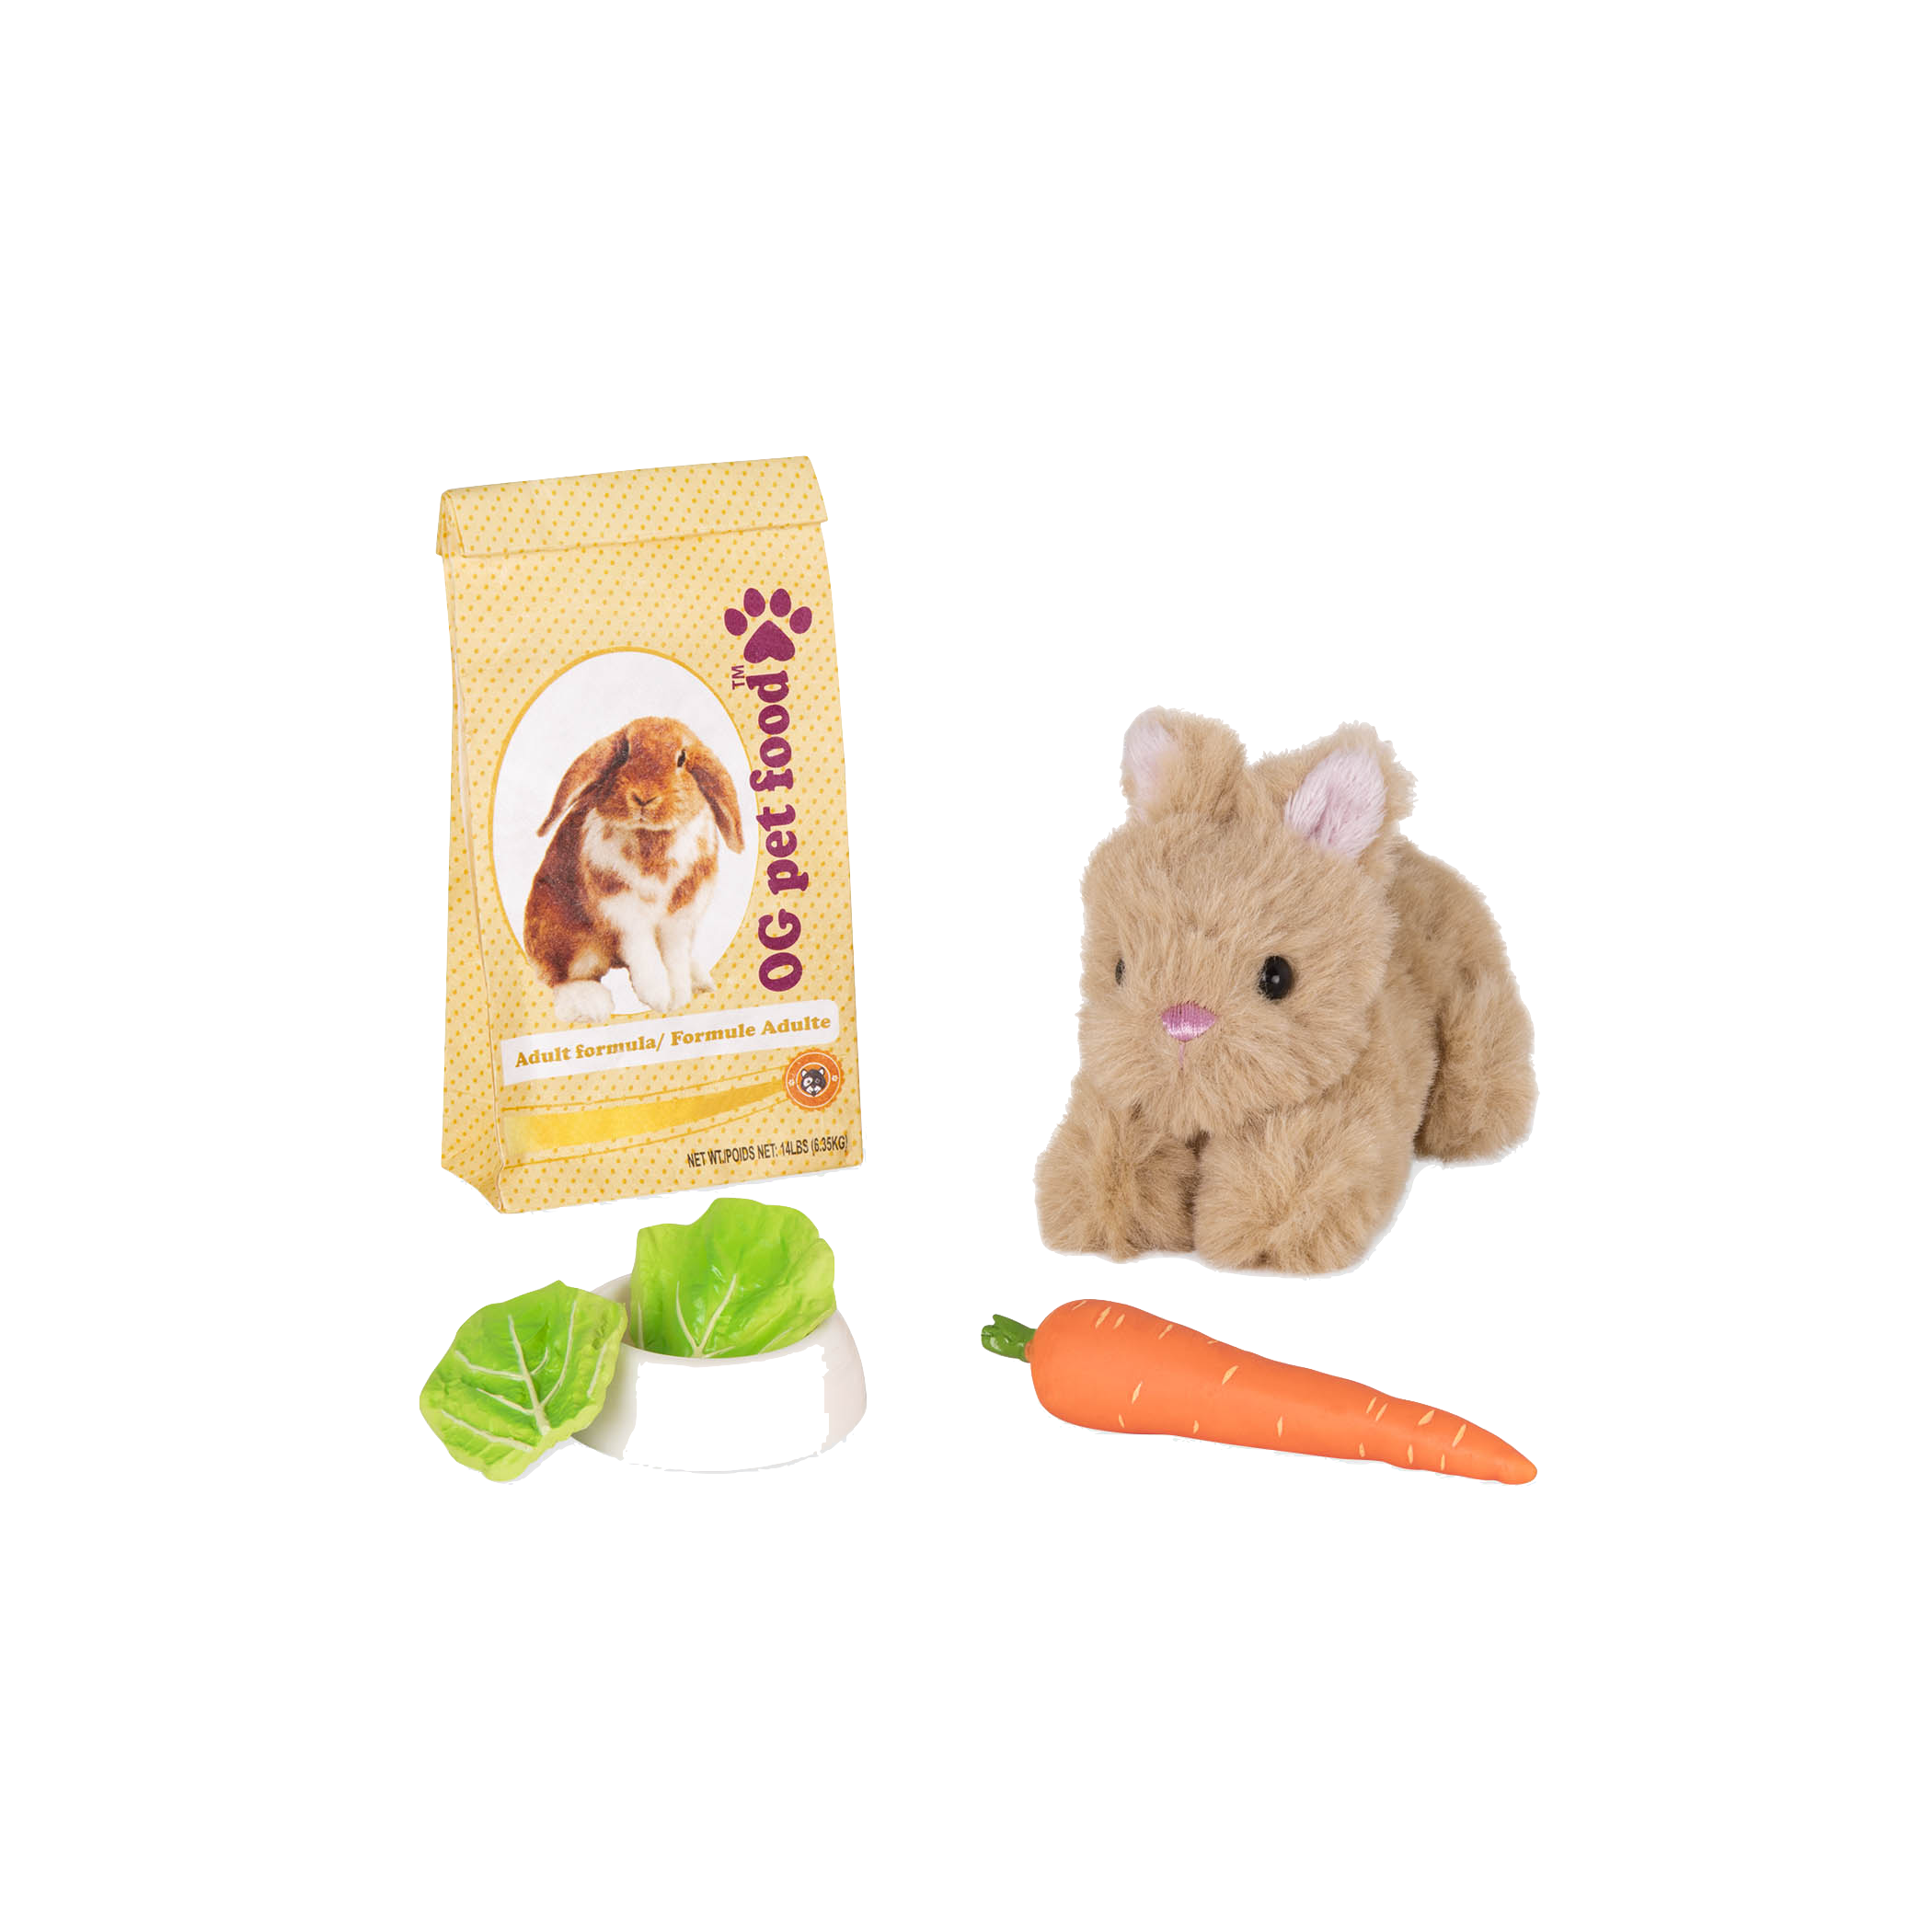 Pet Bunny Set with lettuce in bowl